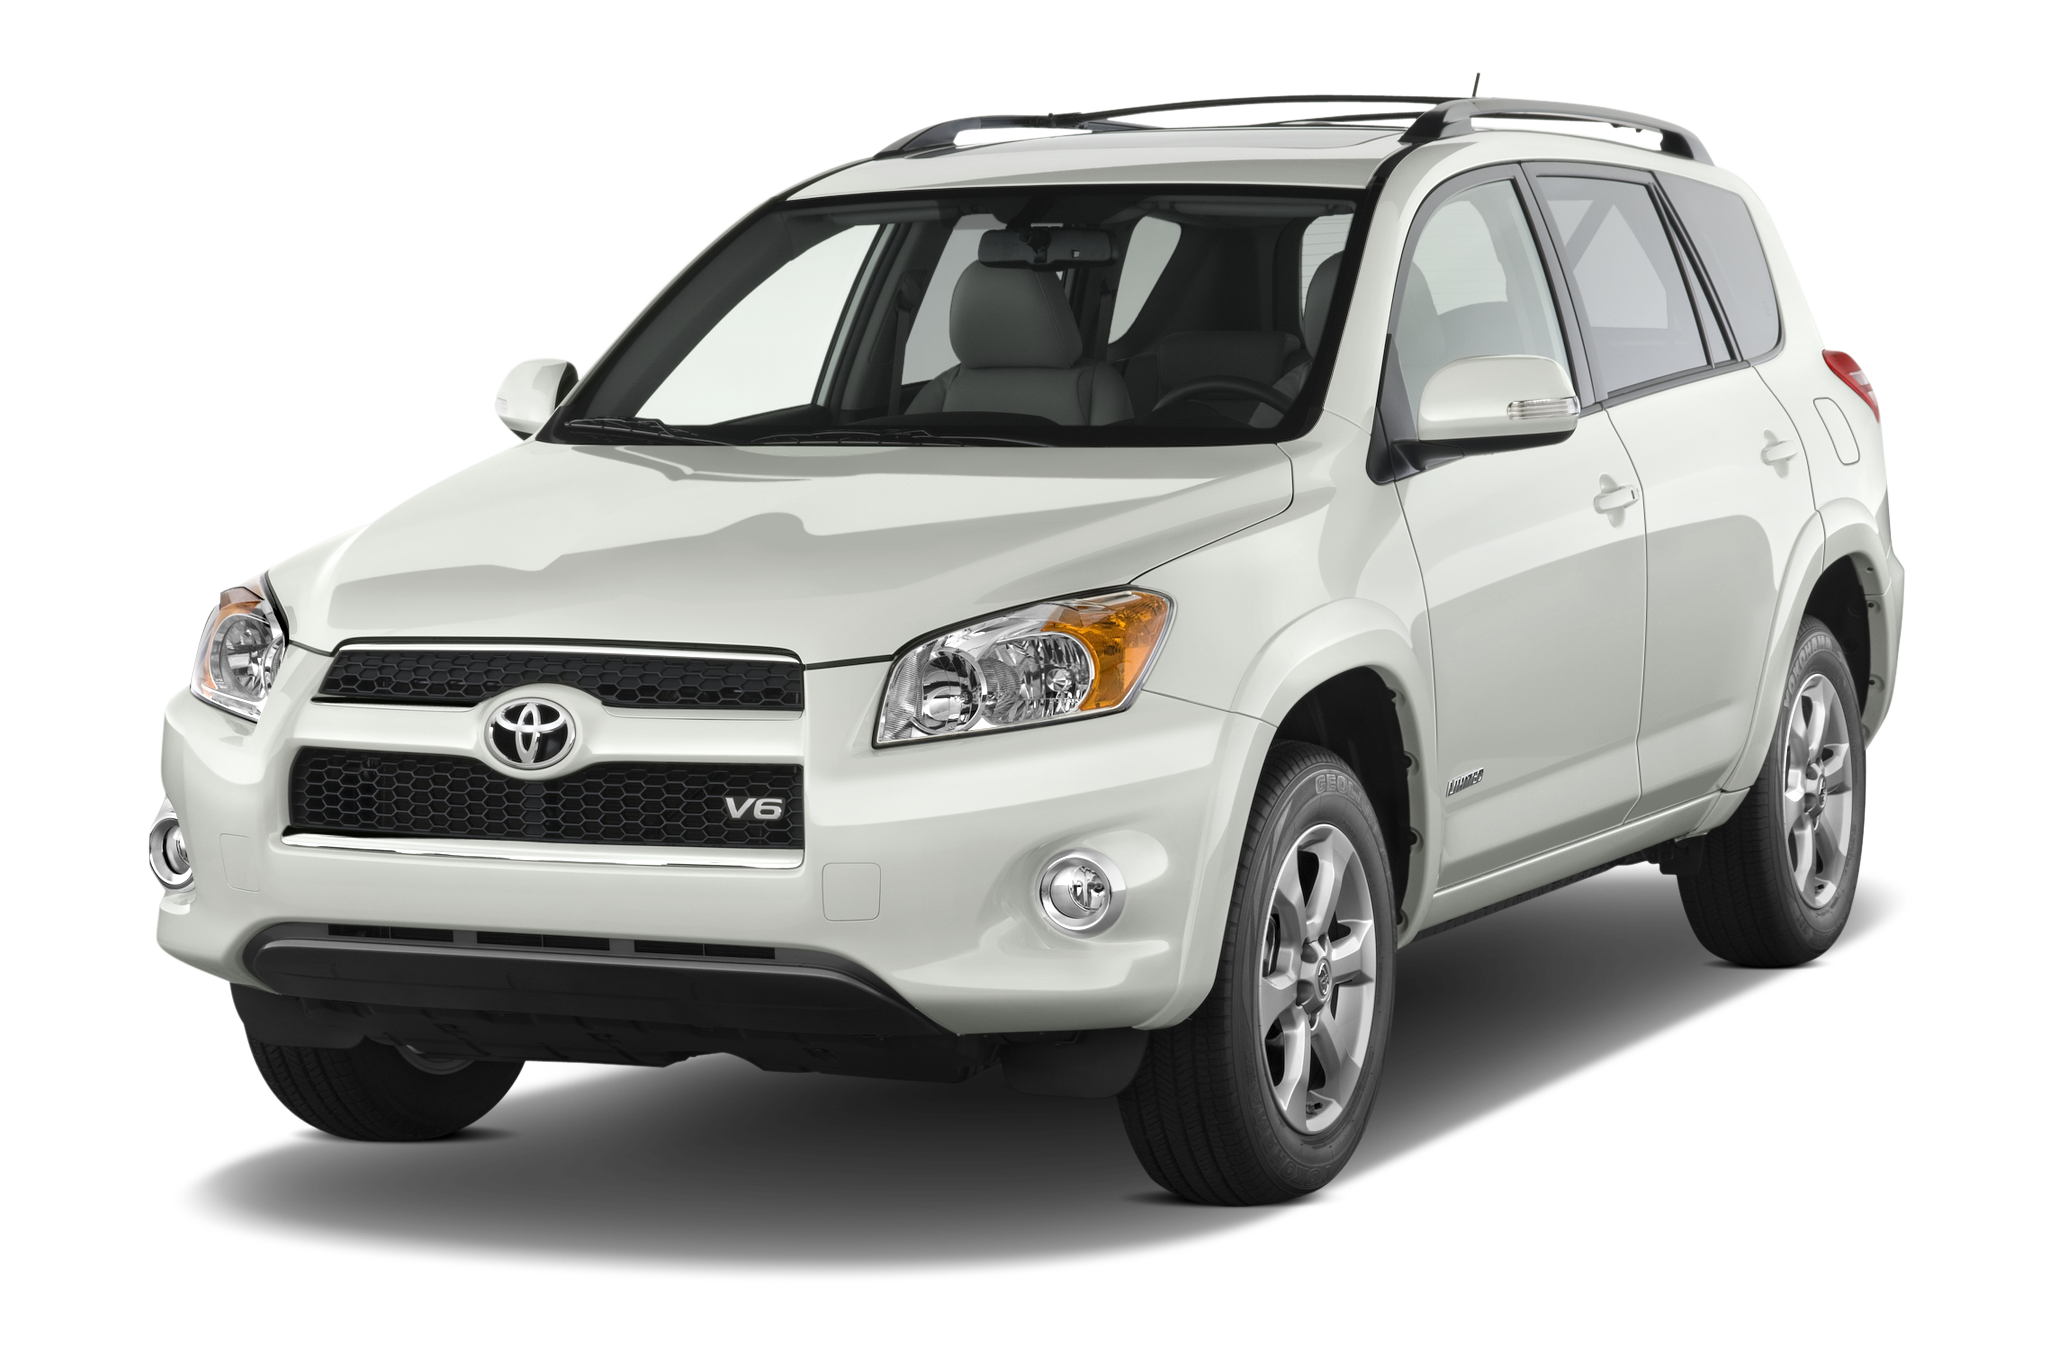 2010 toyota rav4 european model 2010 geneva auto show coverage new car reviews concept cars. Black Bedroom Furniture Sets. Home Design Ideas